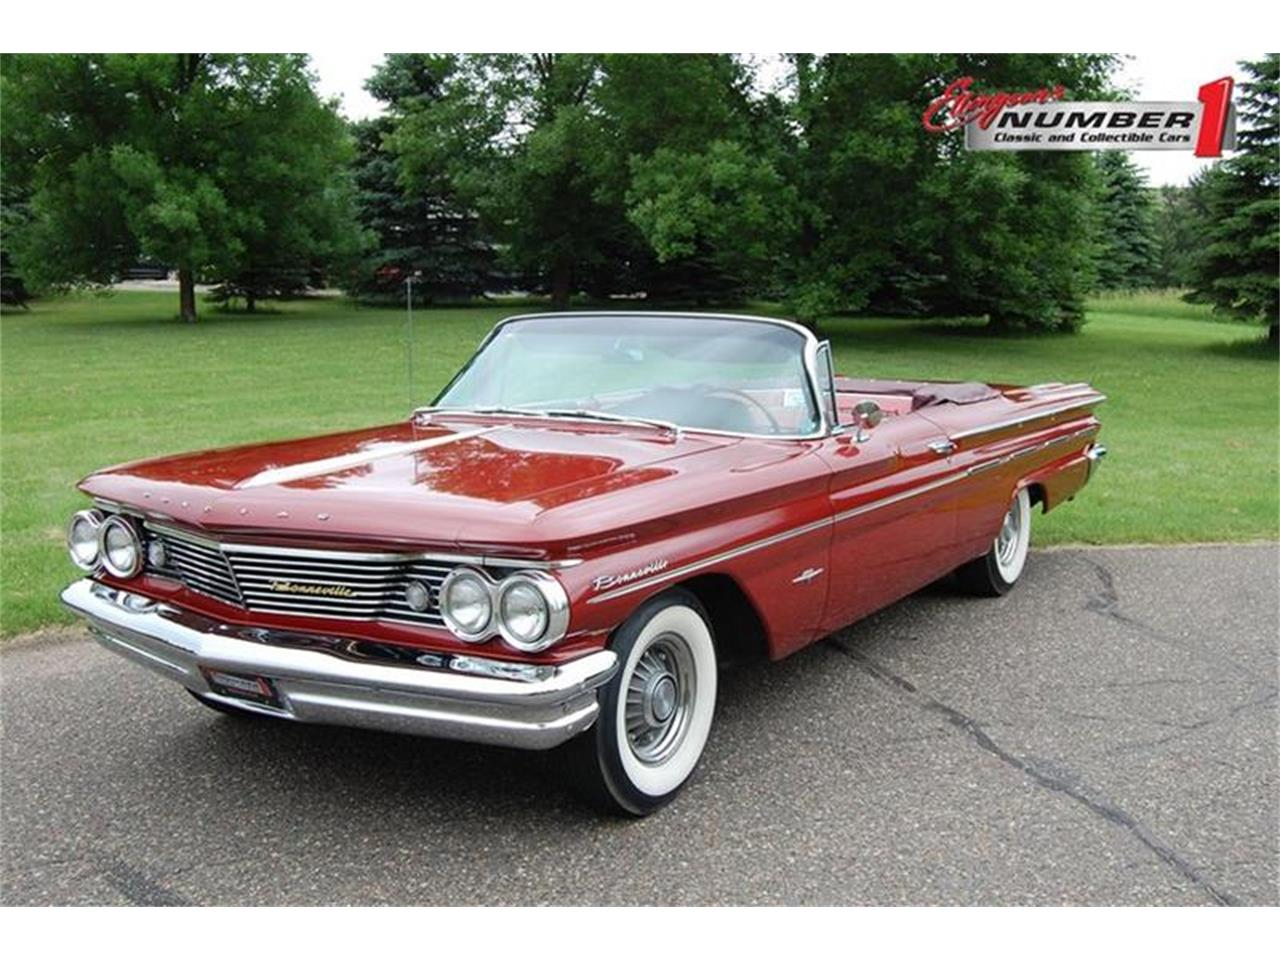 Large Picture Of Clic 60 Pontiac Bonneville Located In Minnesota 59 995 00 Nn56